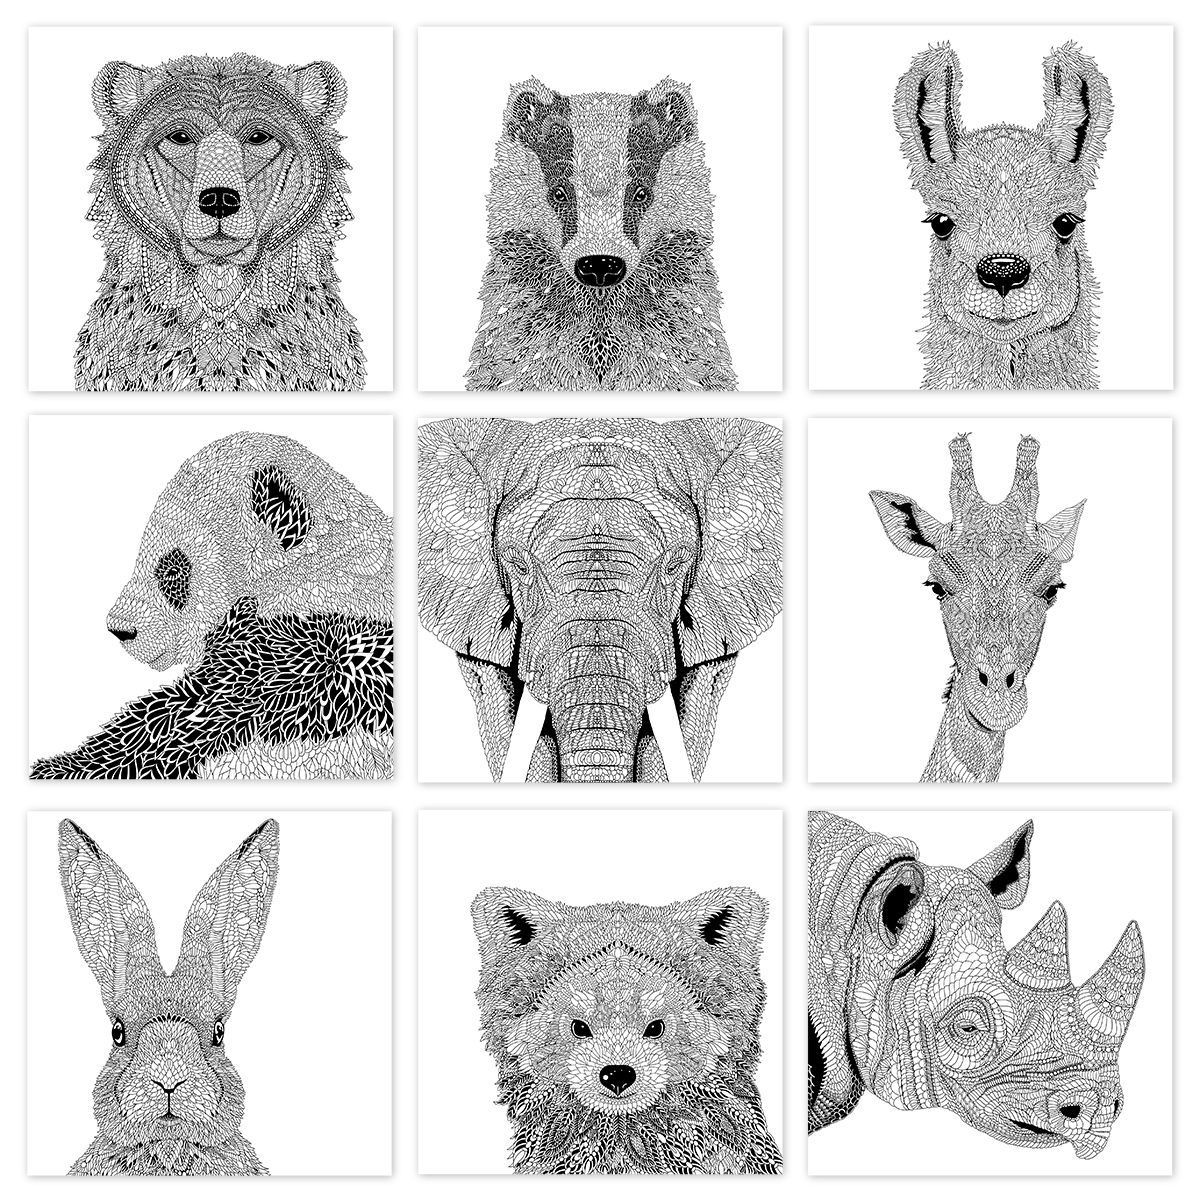 A selection of drawings from 'The Menagerie' created for the mindfulness relaxation of colouring in.